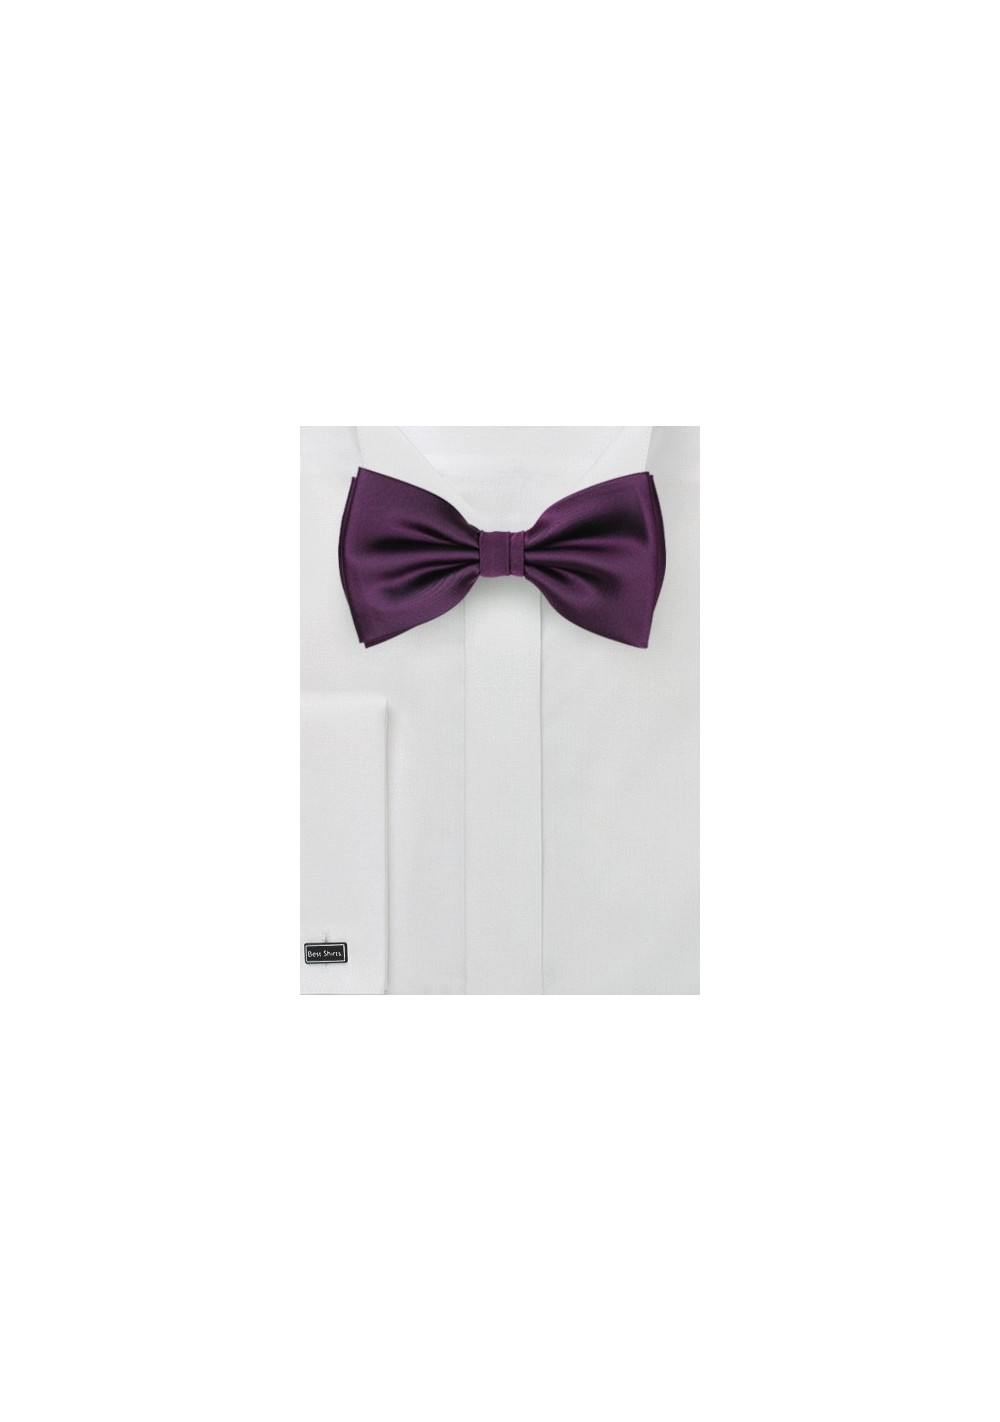 Solid Bow Tie in Berry